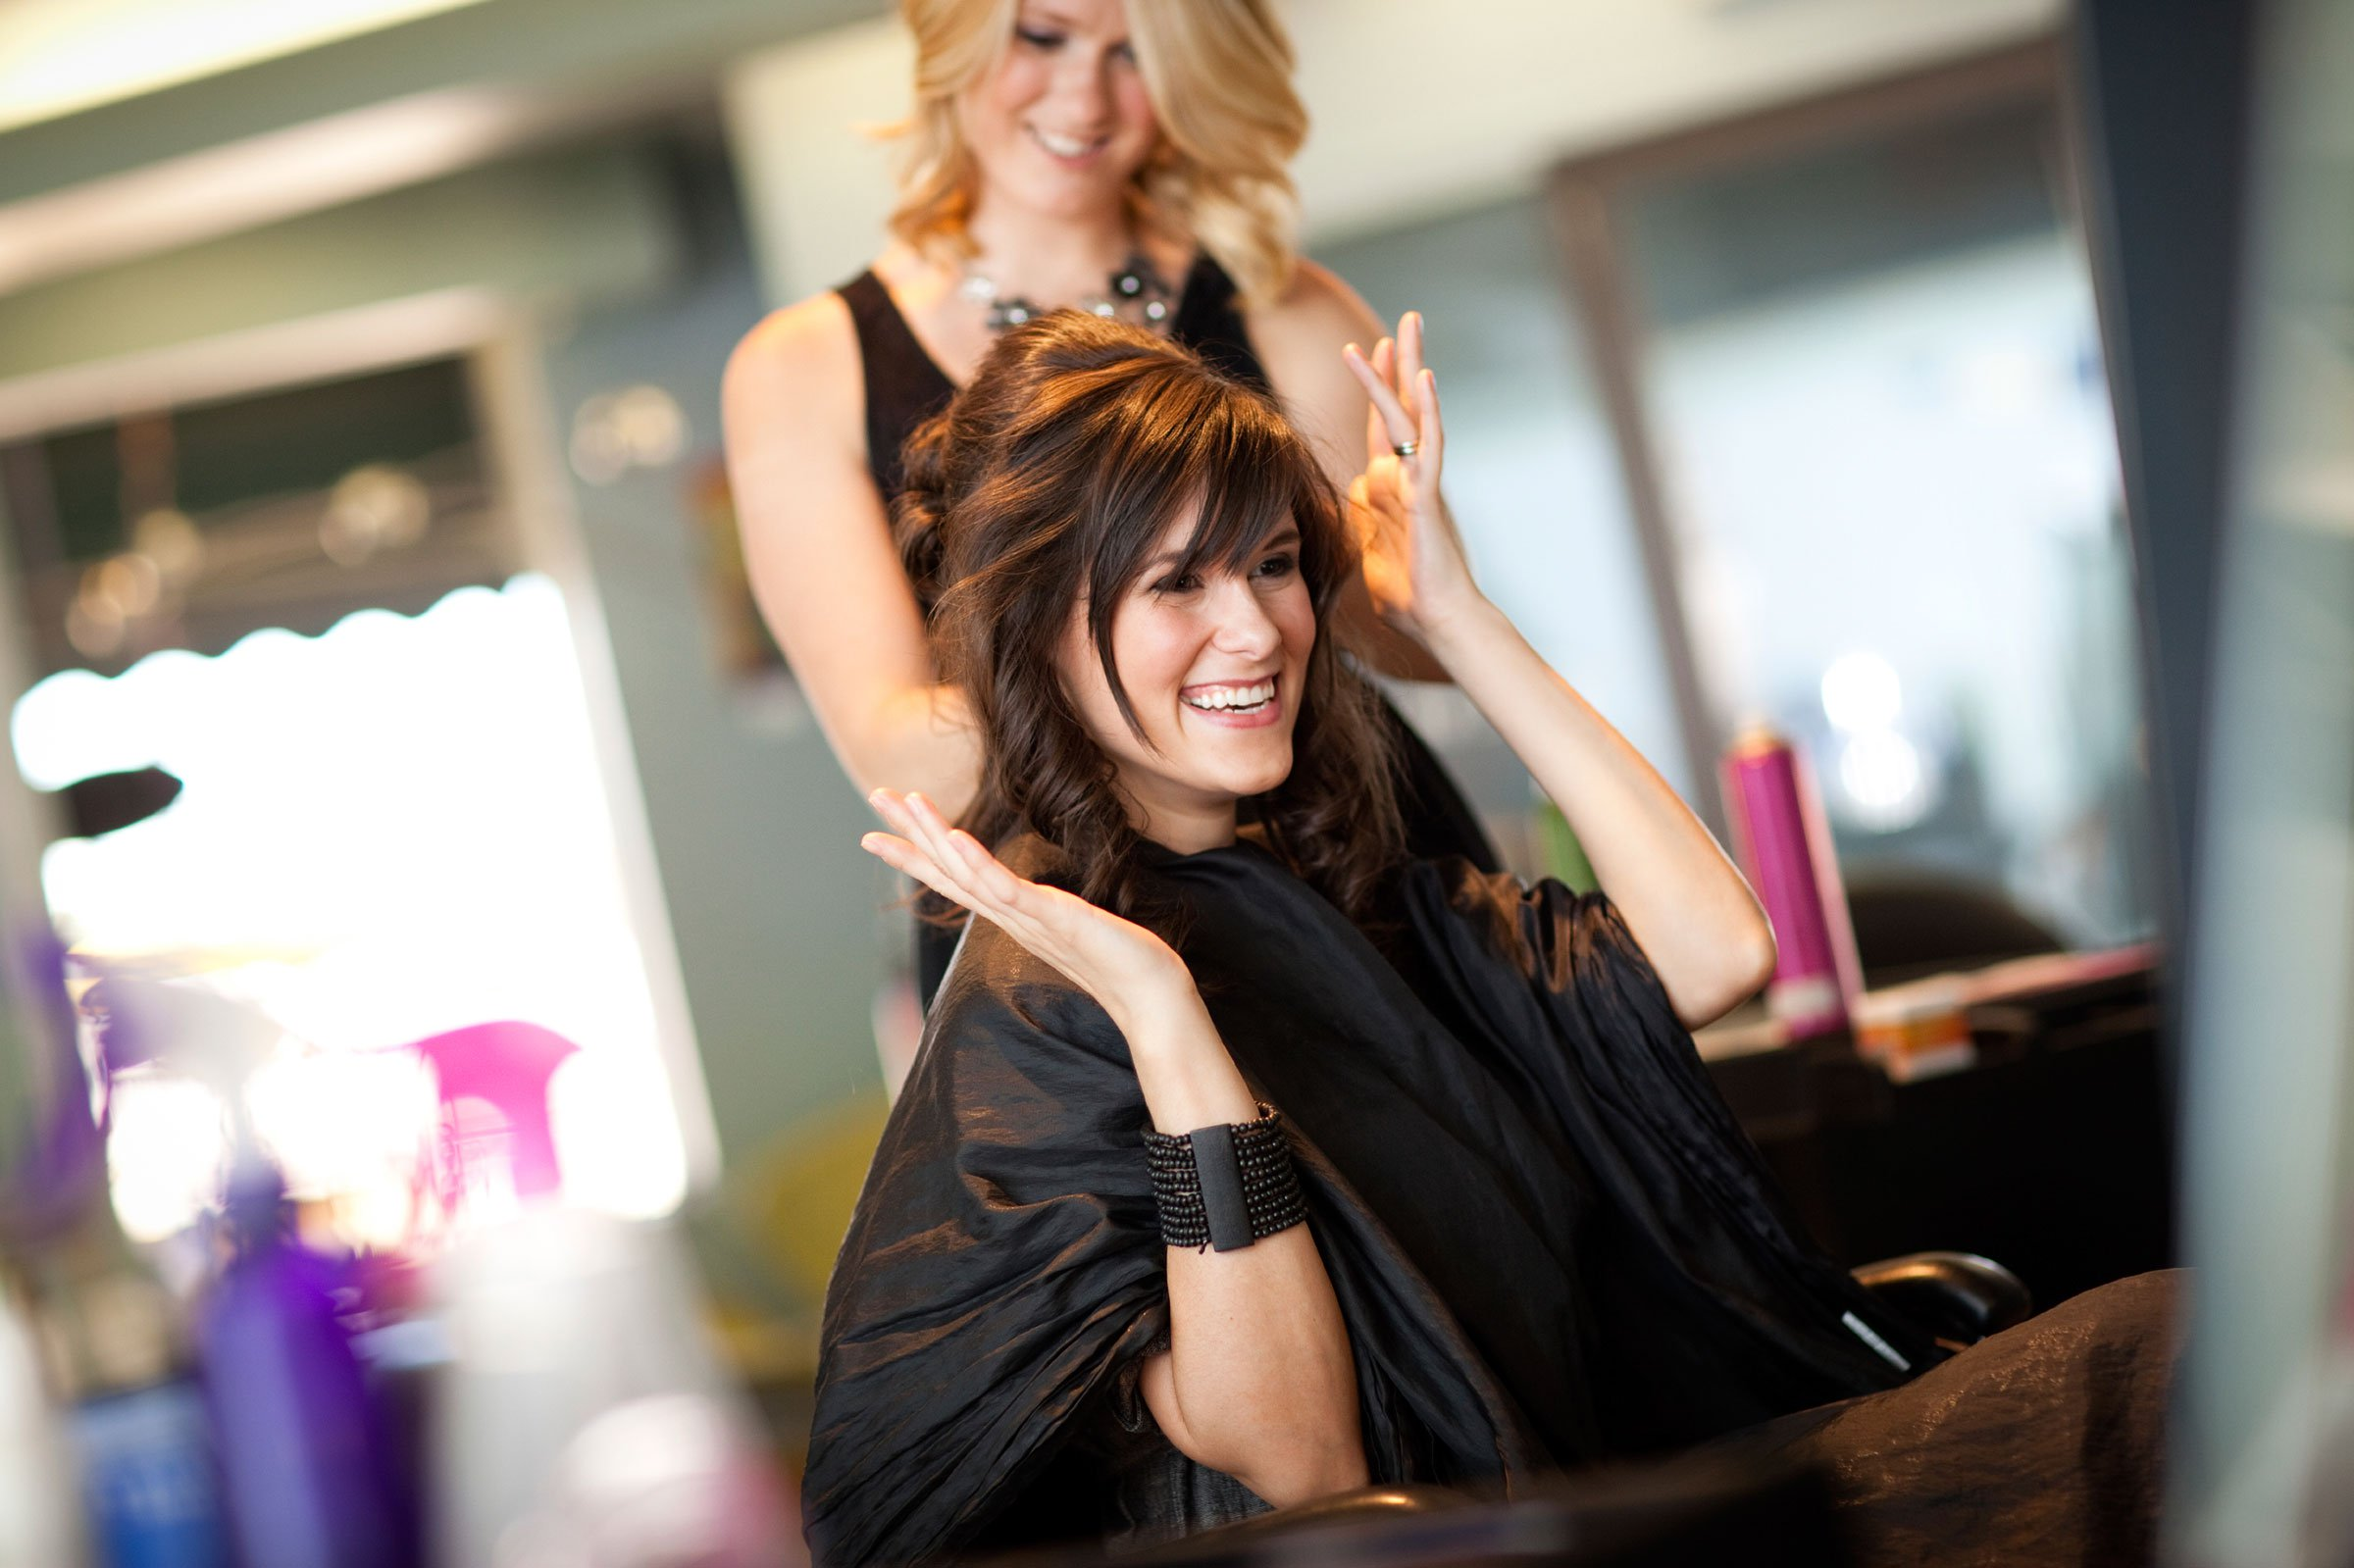 Now Hiring - At the Styles & Extensions, we are always on the lookout for fresh and energetic faces.If you have recently entered the cosmetology field and are looking for a place where you can learn and grow, then consider the Styles & Extensions Team. We are dedicated to helping our employees grow professionally and have successful long-term careers in the industry and our program is design to help you succeed with amazing training opportunities and guidance. If you are interested, submit your application below. Thank you!